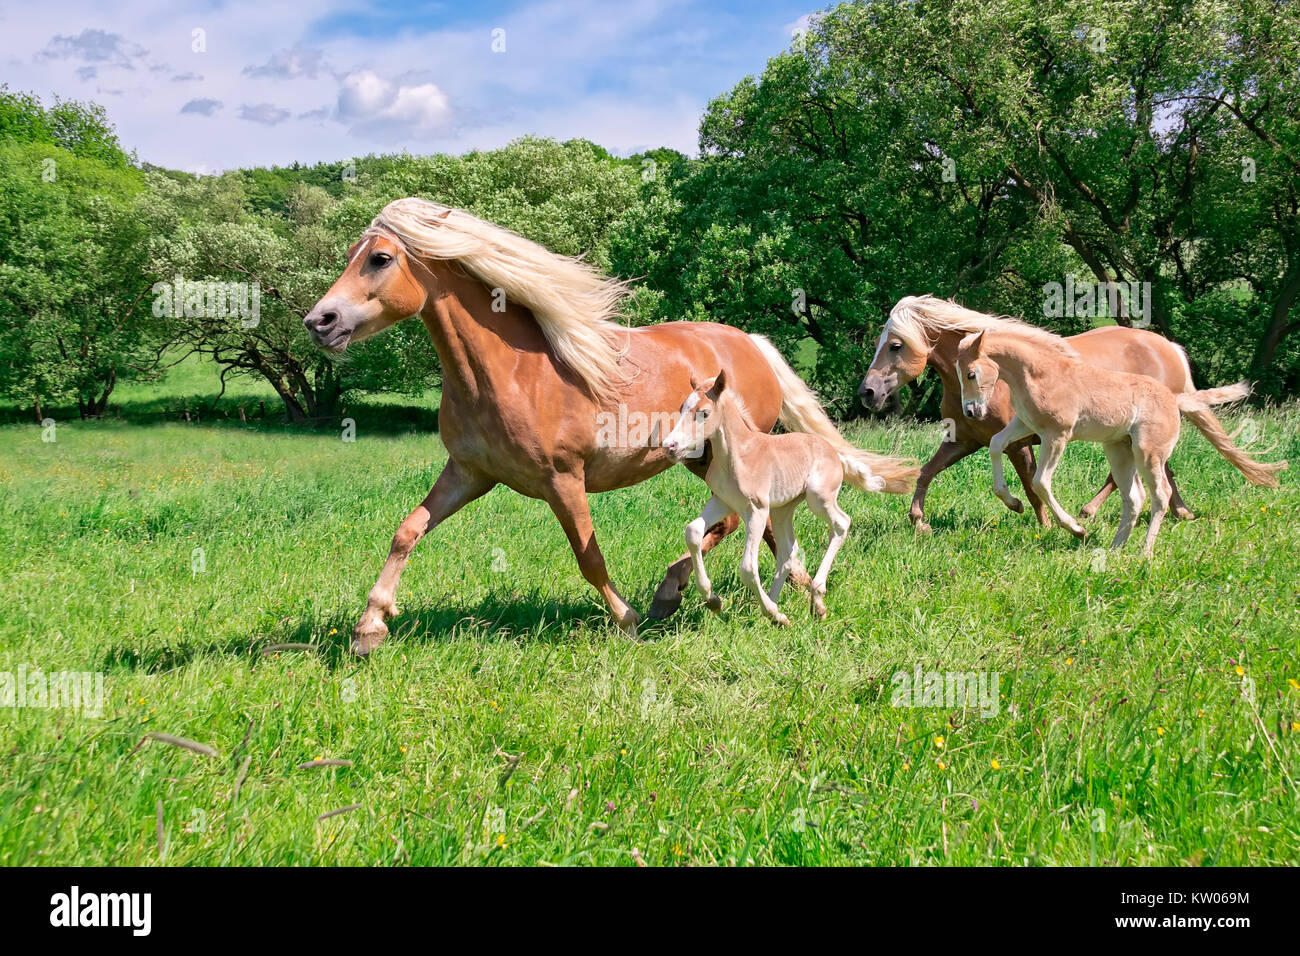 Haflinger mare with frisky foals running together across a pasture in a beautiful farm landscape, Germany. - Stock Image